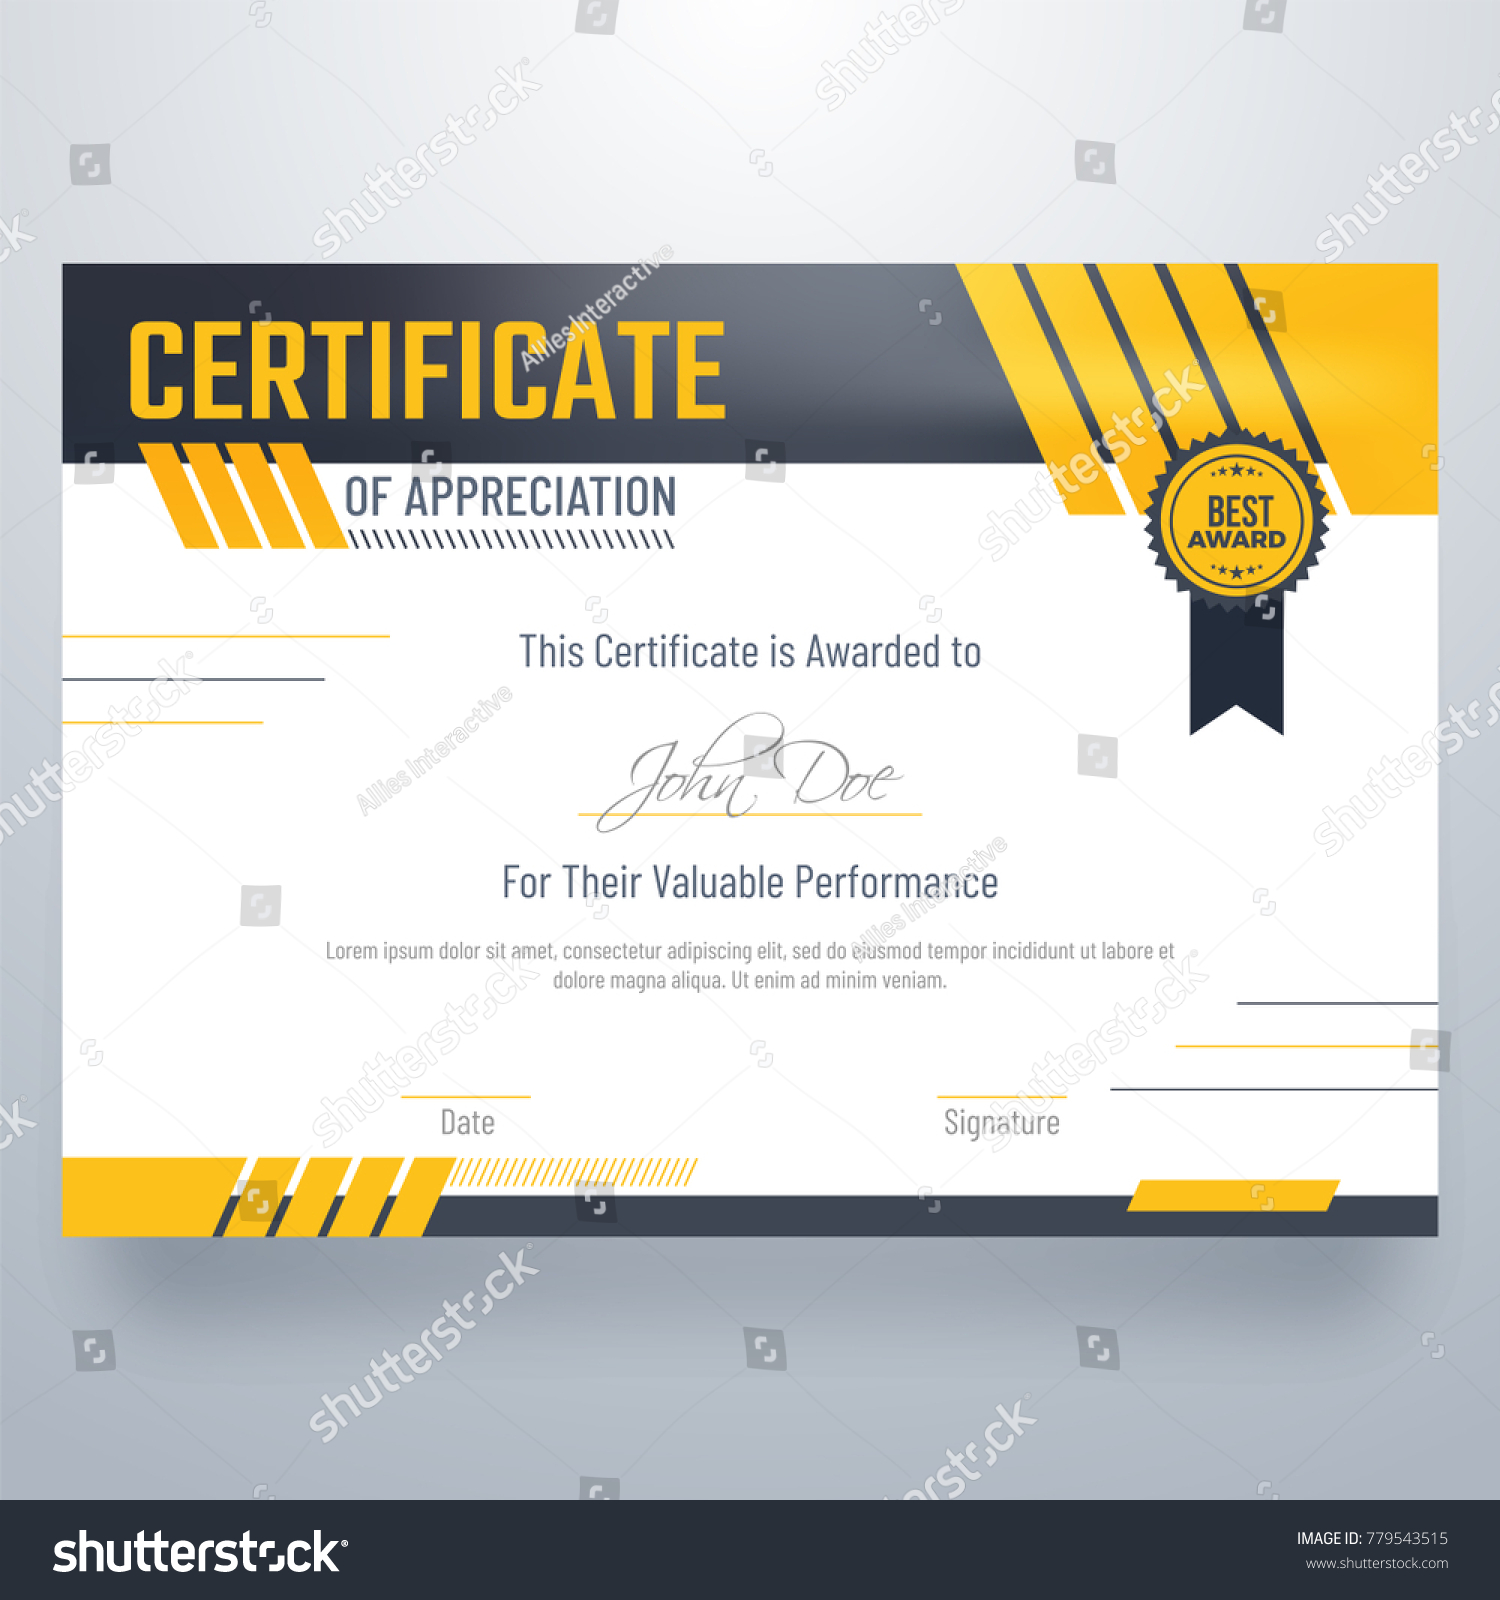 Certificate appreciation award template glossy yellow stock vector certificate of appreciation award template in glossy yellow and black color xflitez Choice Image